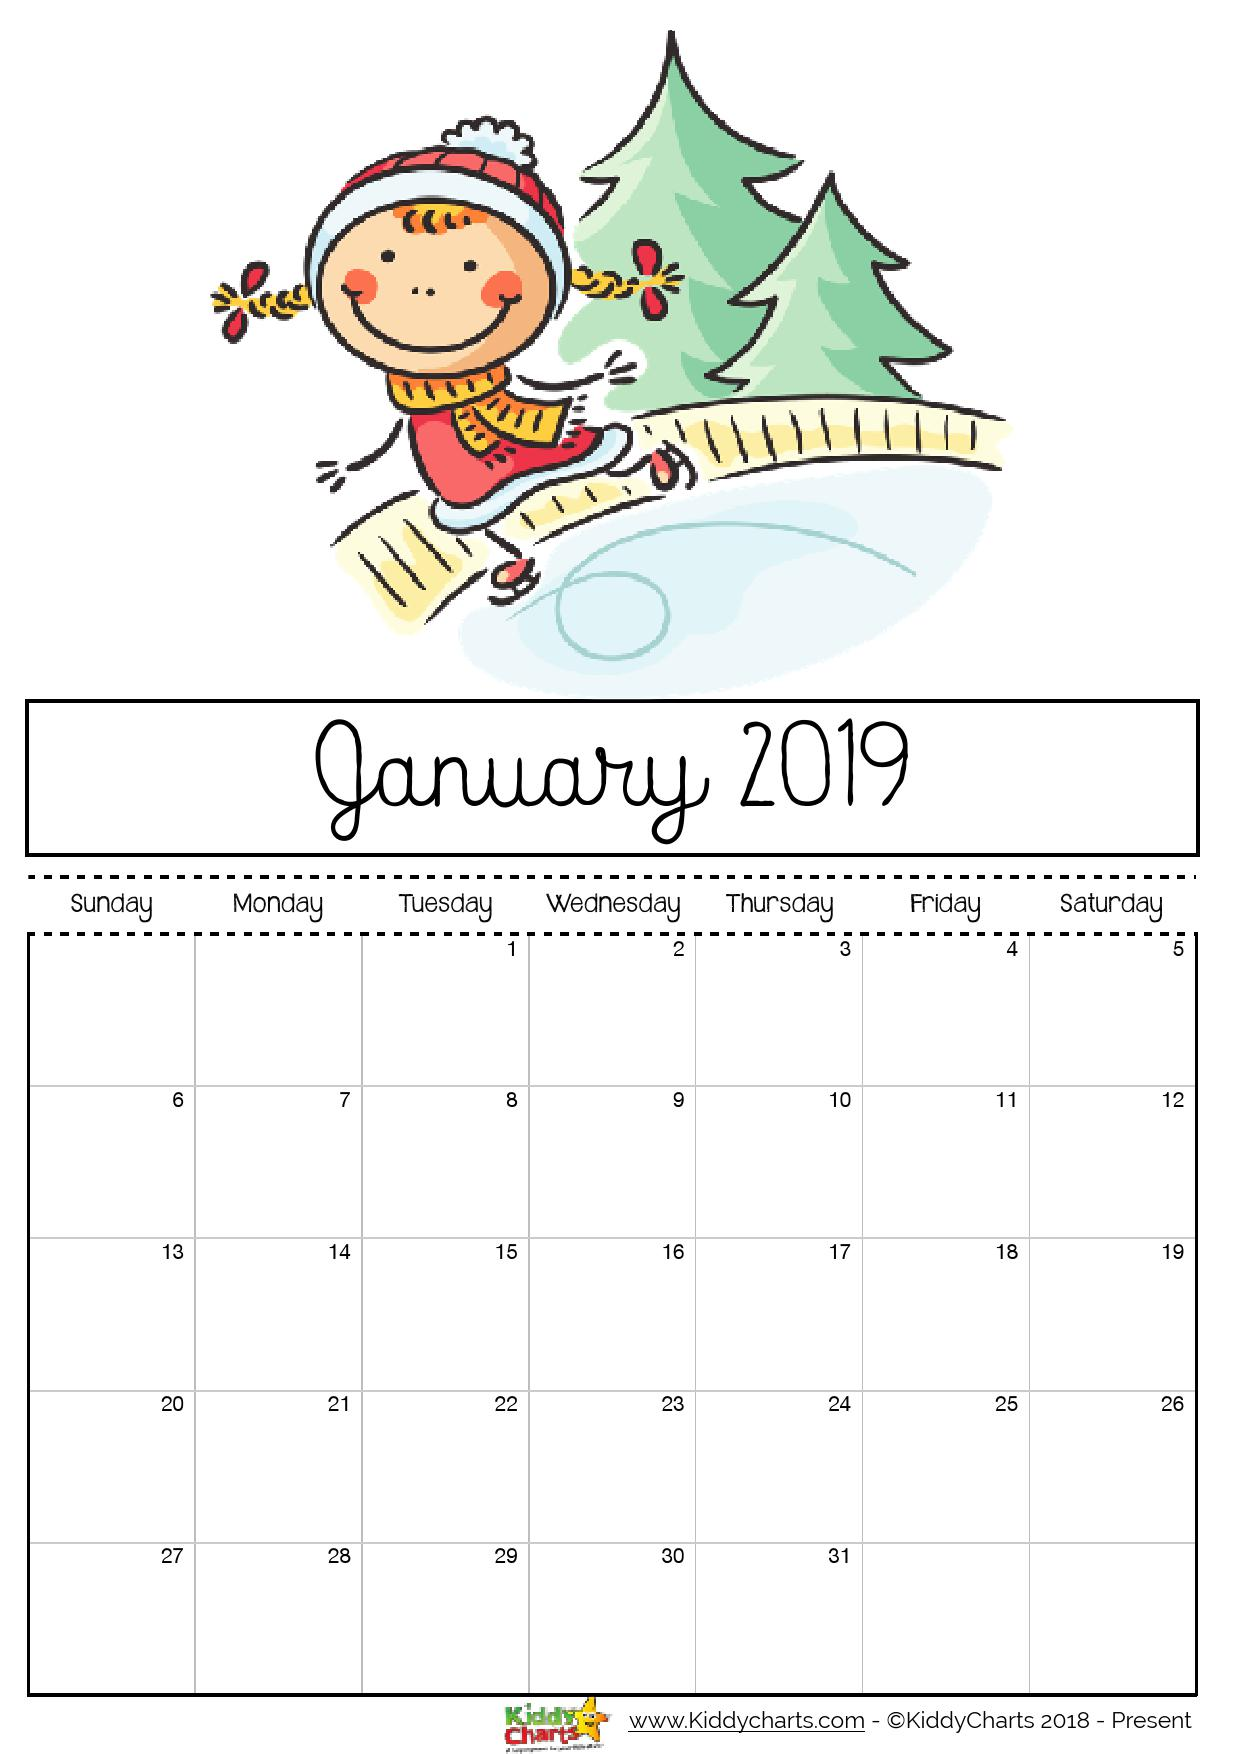 january printable 2019 calendar girl playing on an ice rink perhaps something you can